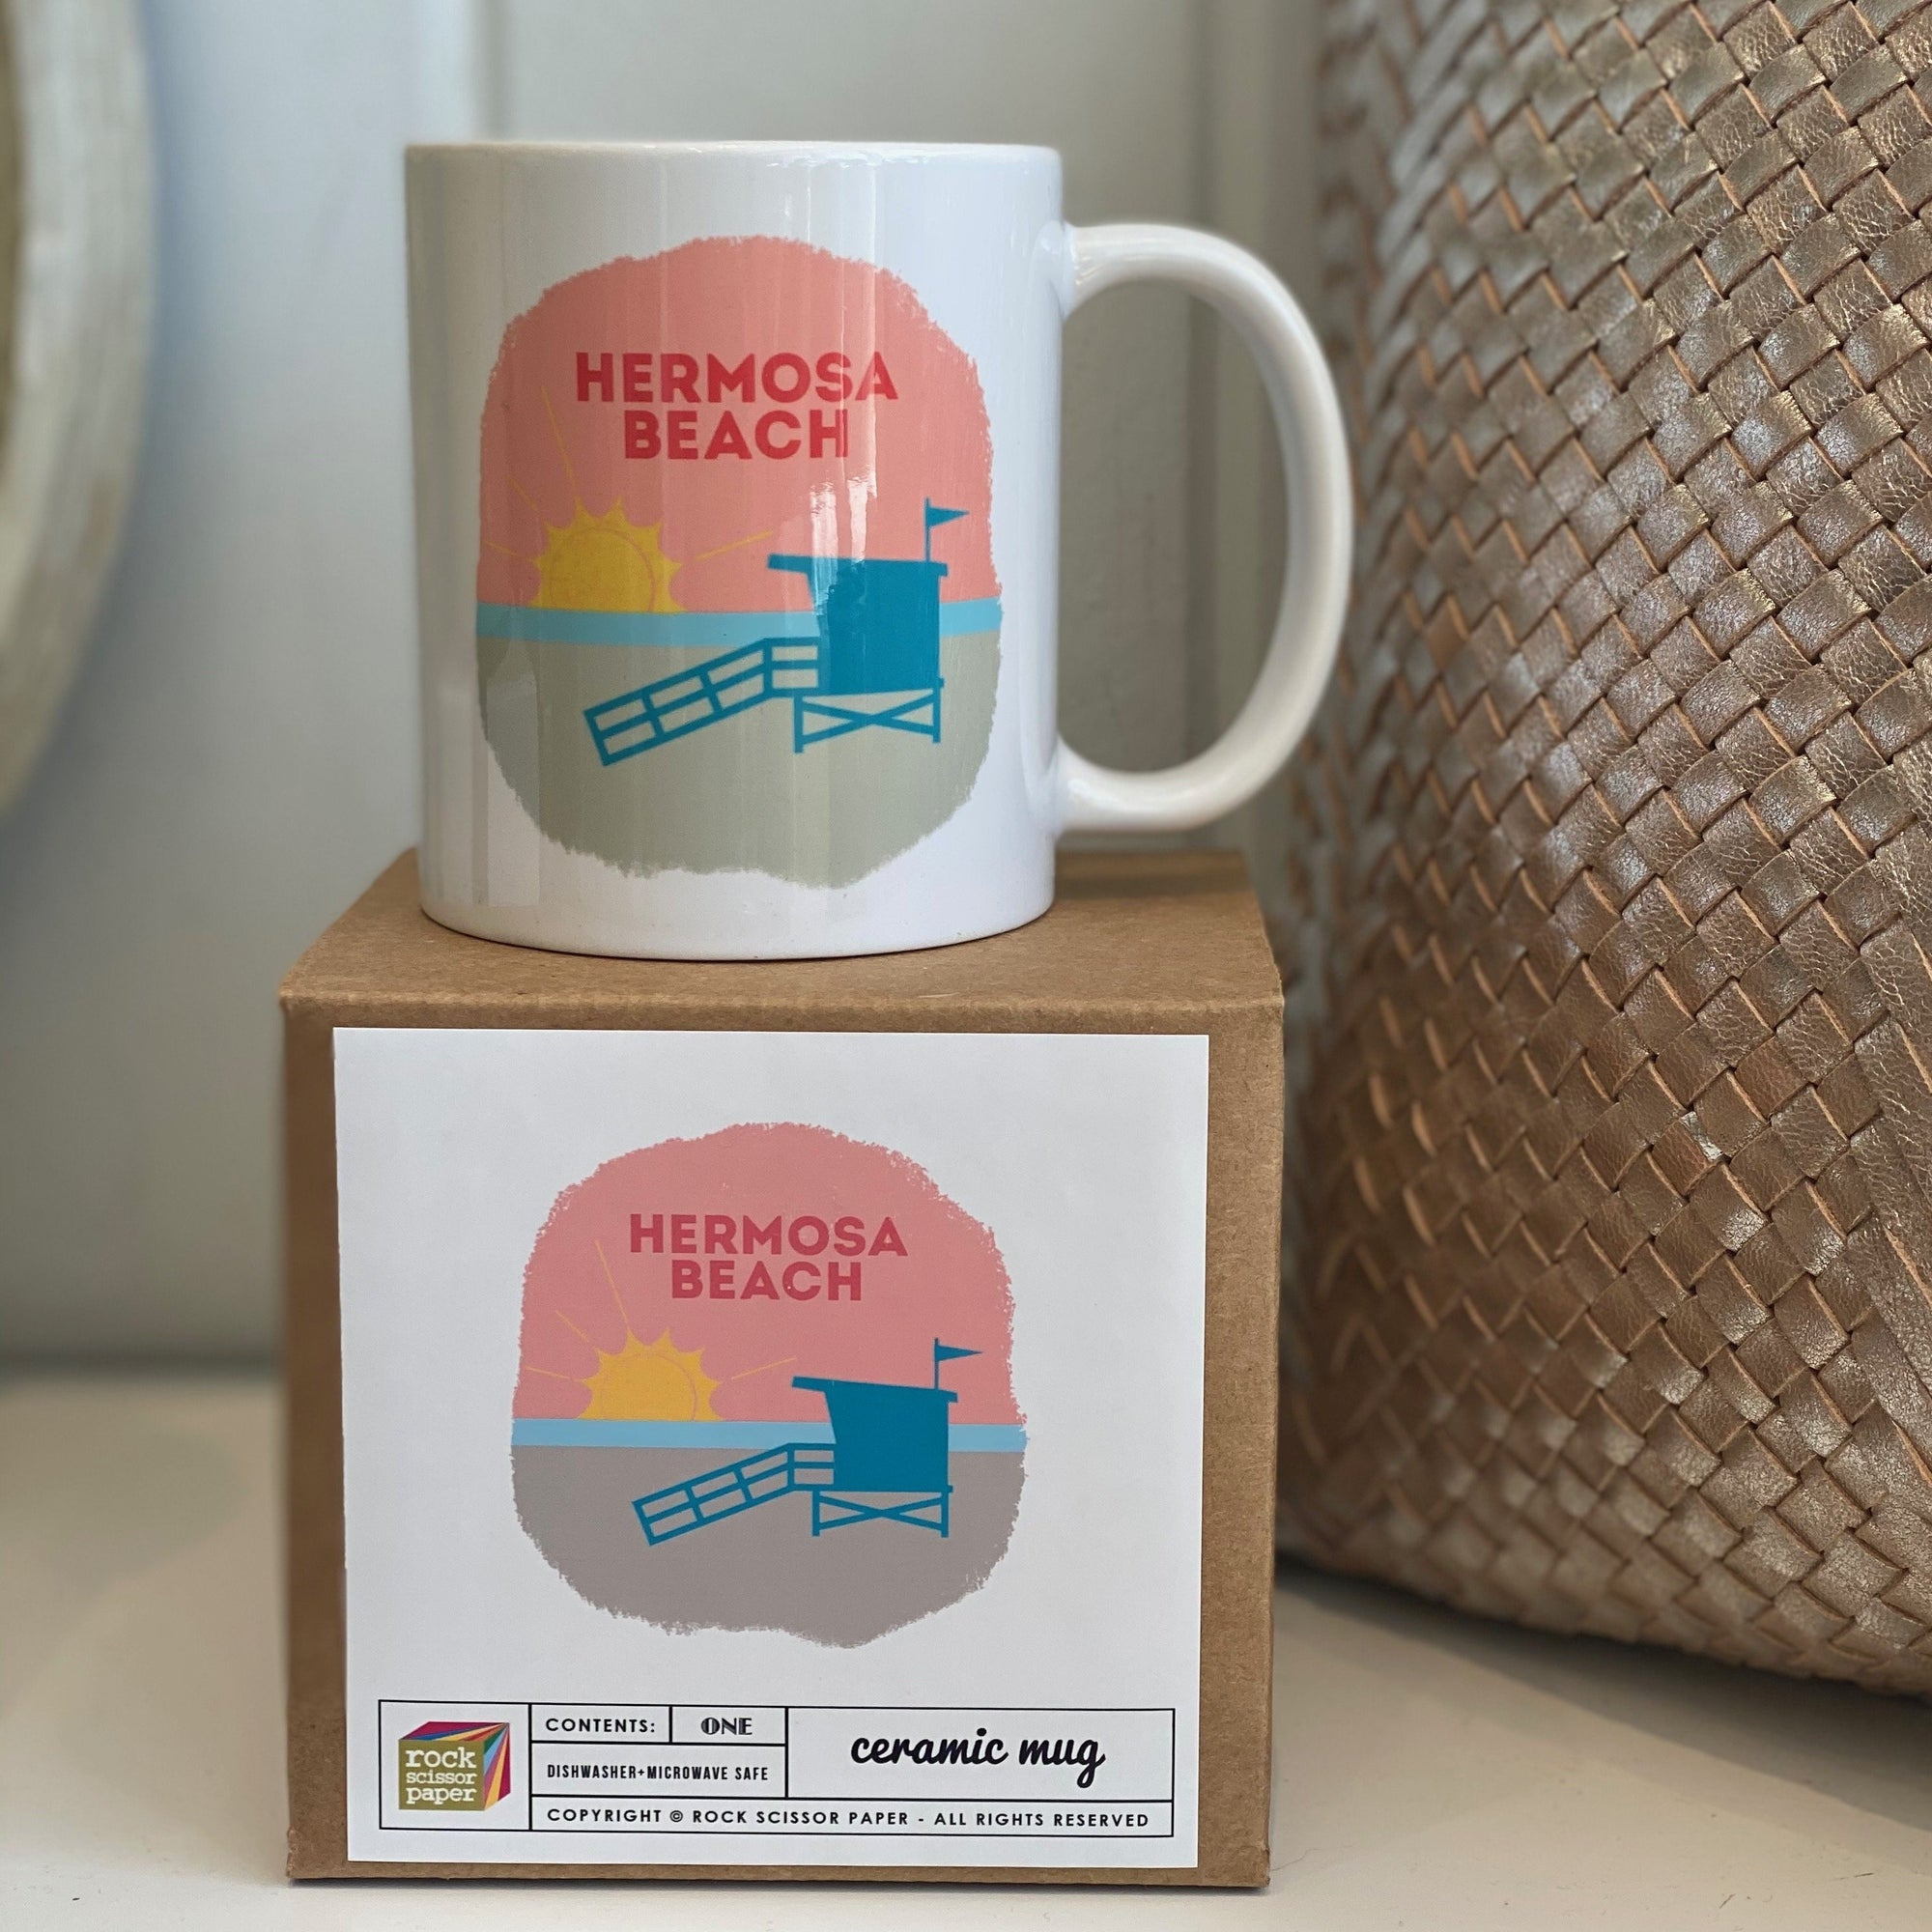 Hermosa Beach Lifeguard Shack Mug